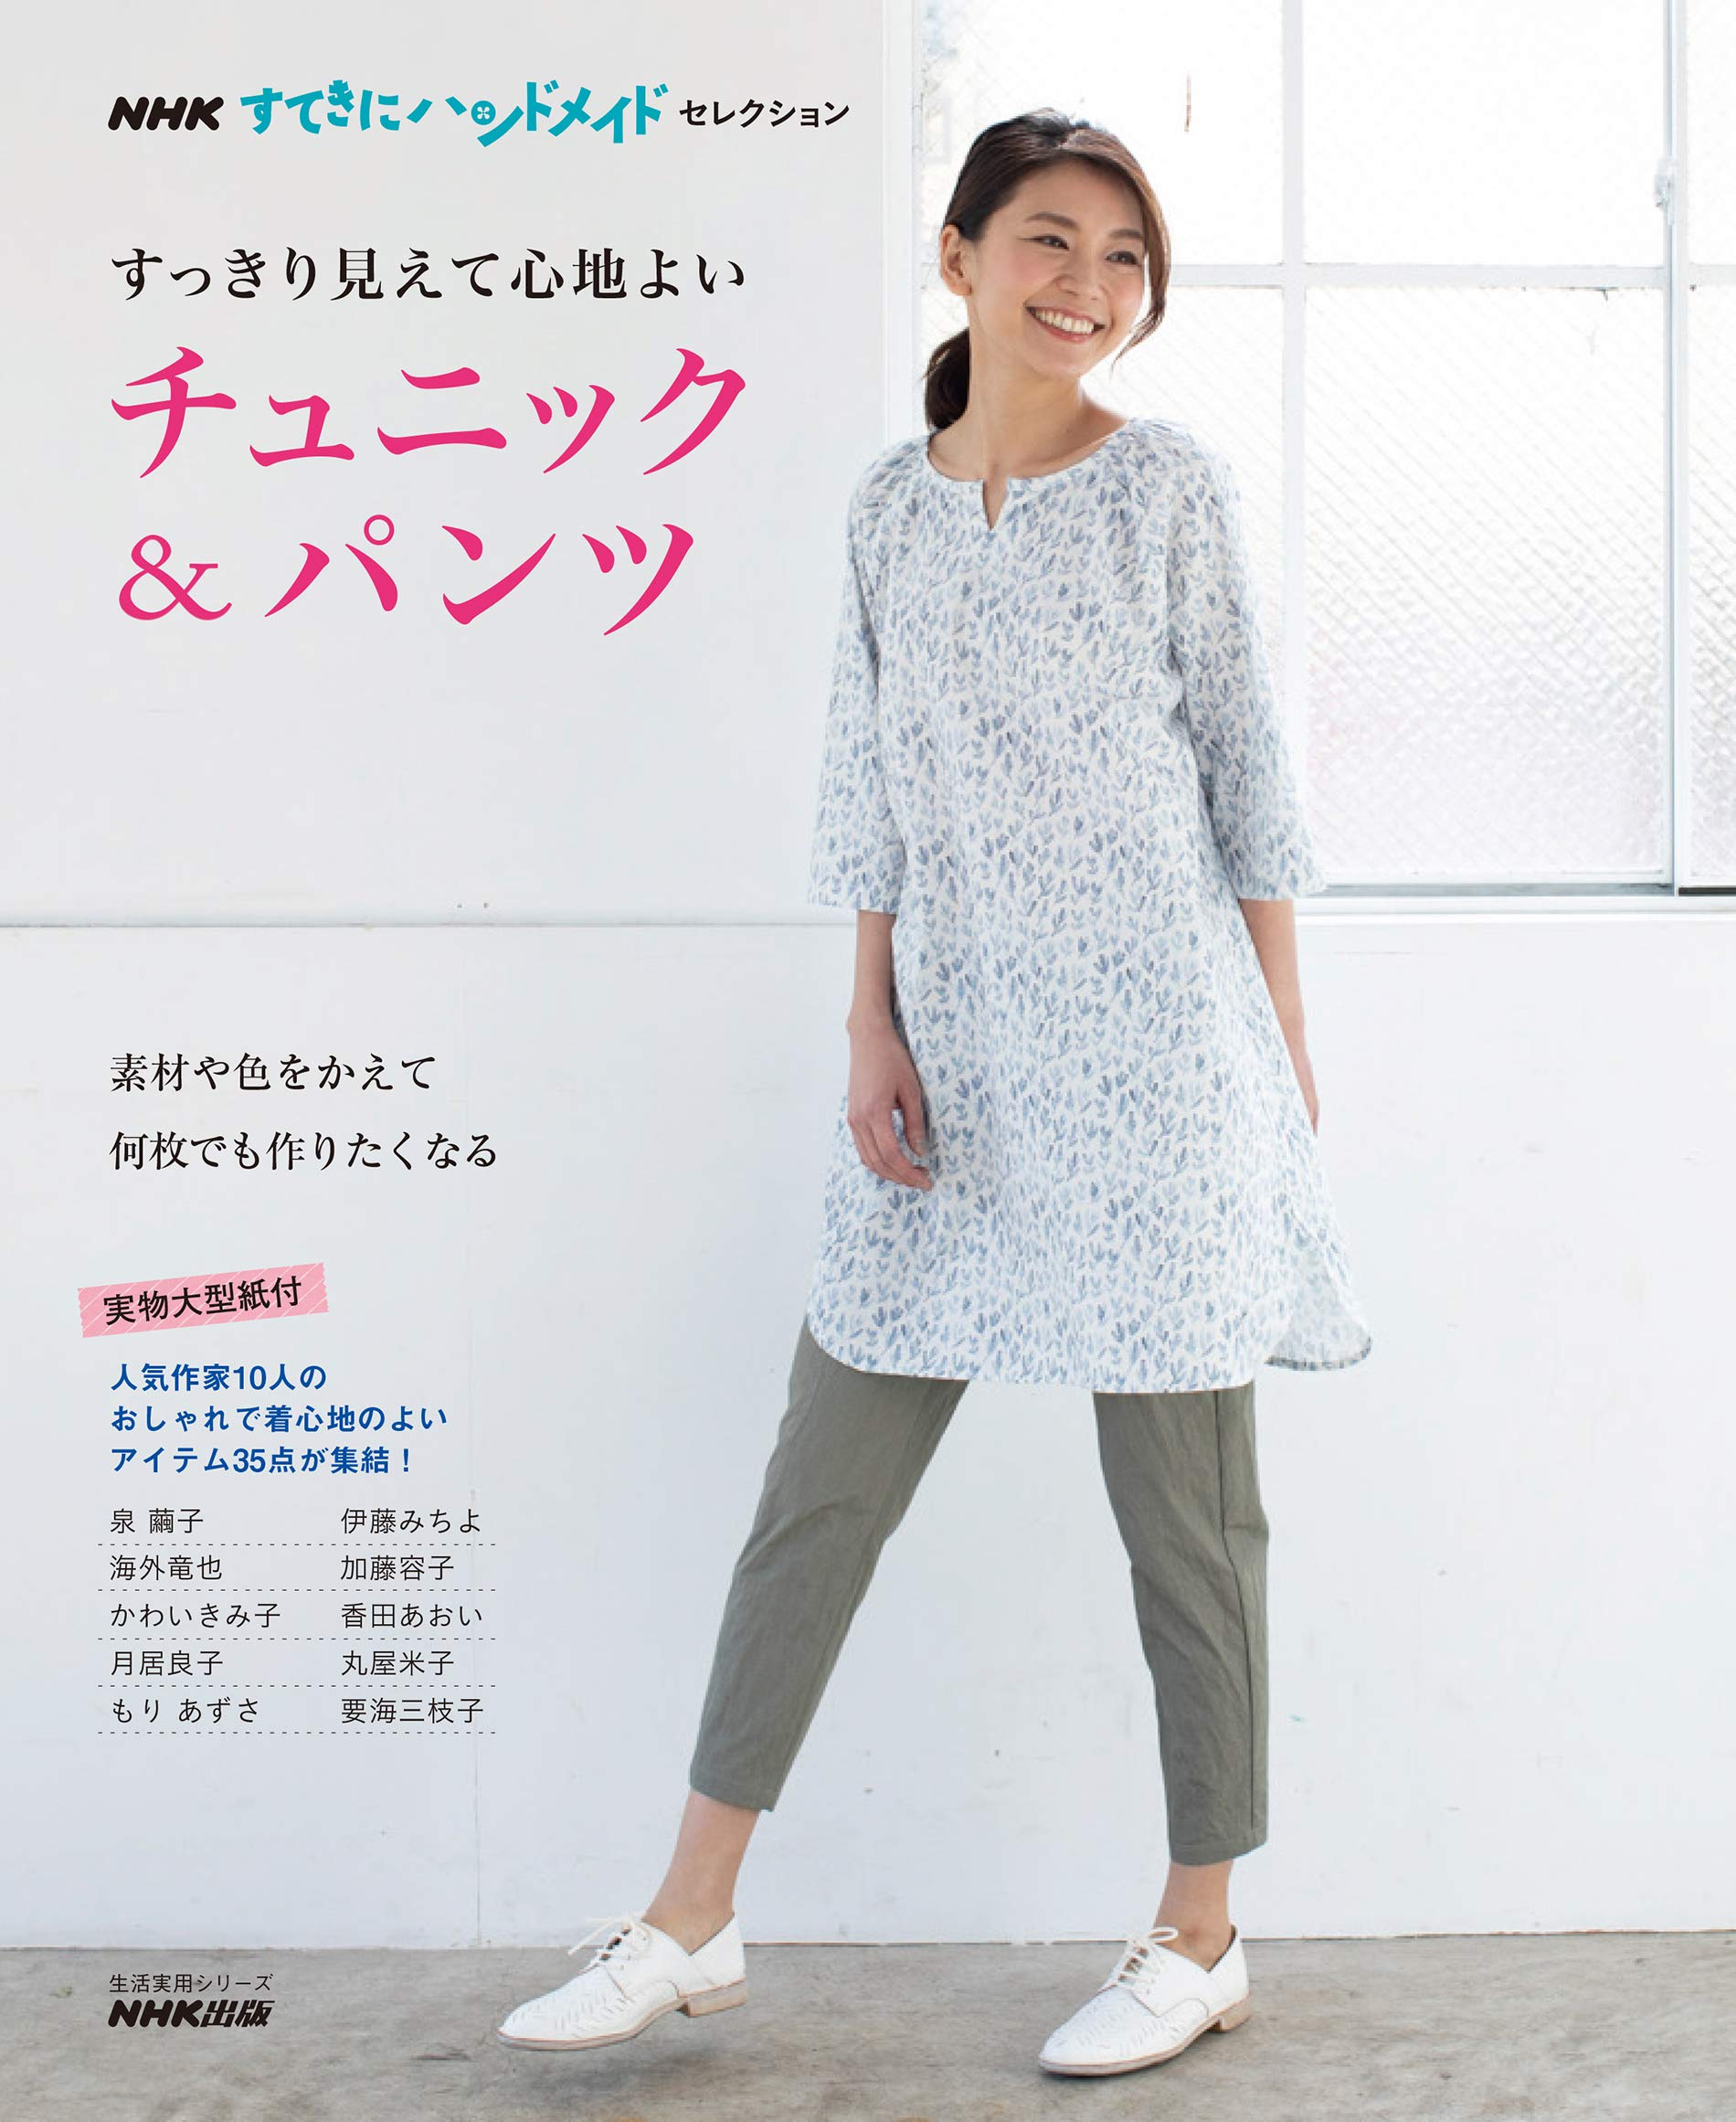 NHK Clean and comfortable tunic & pants